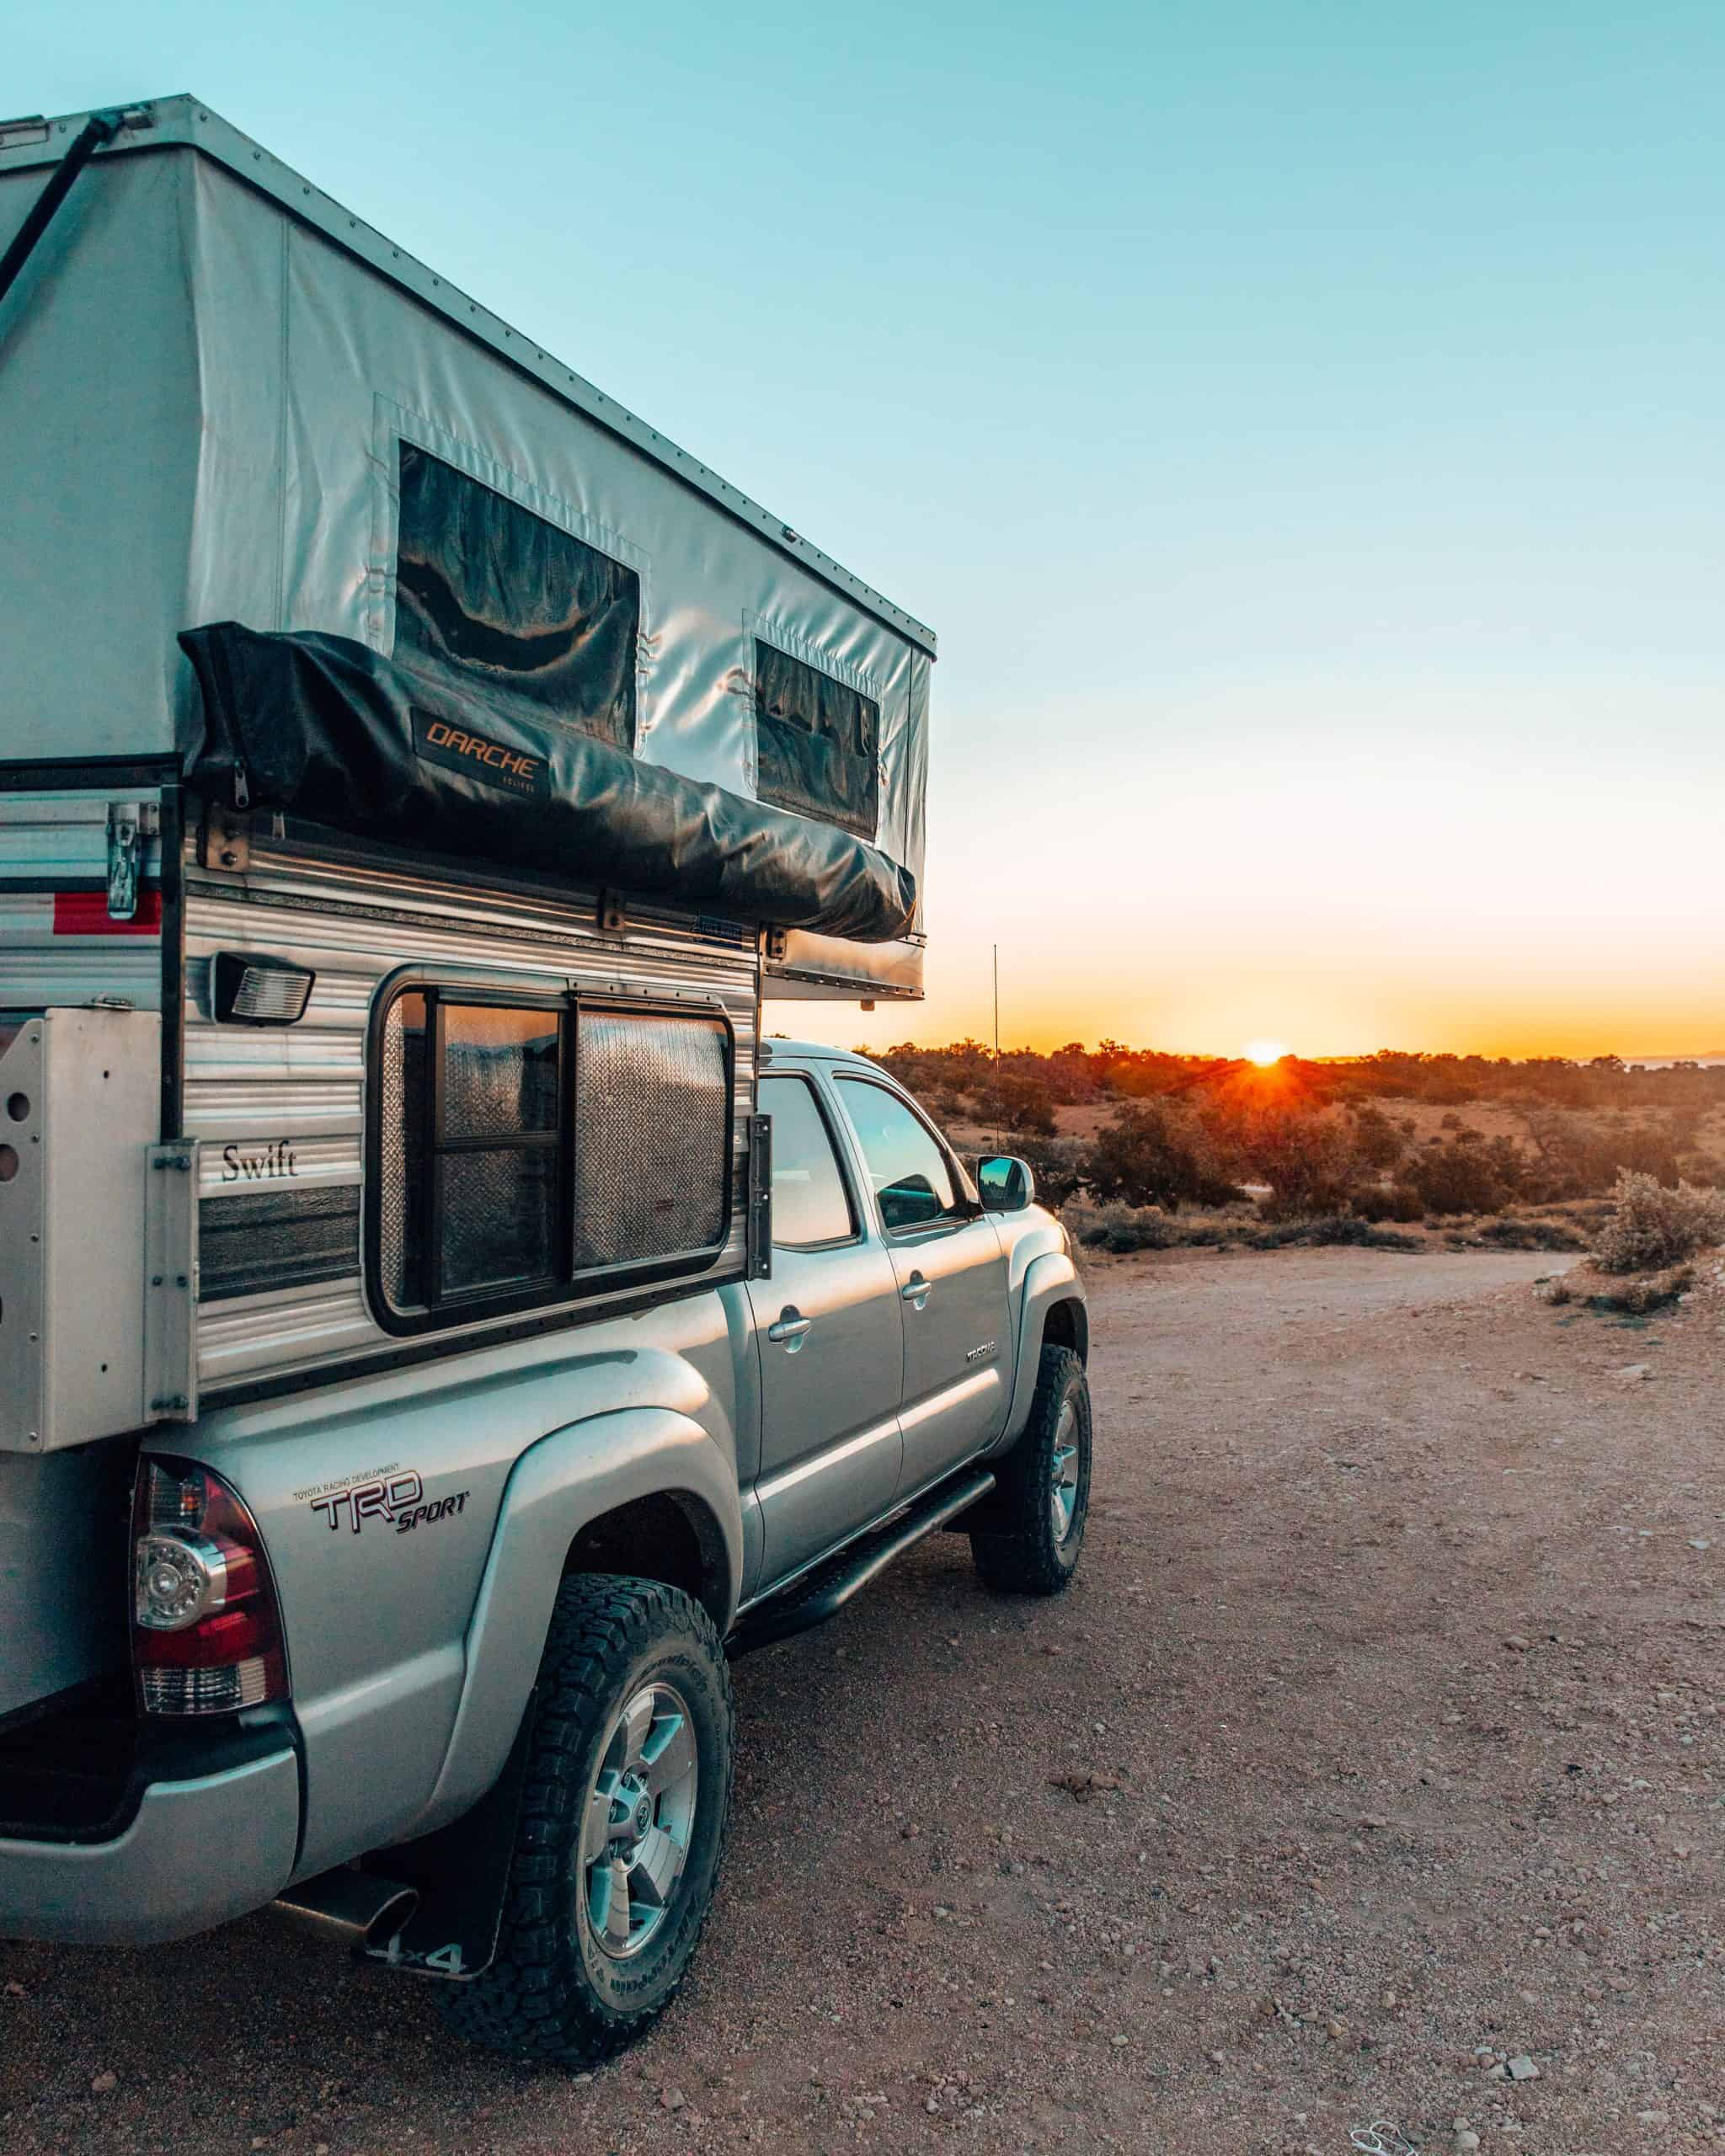 Toyota Tacoma and Four Wheel Camper Swift Model at Sunset